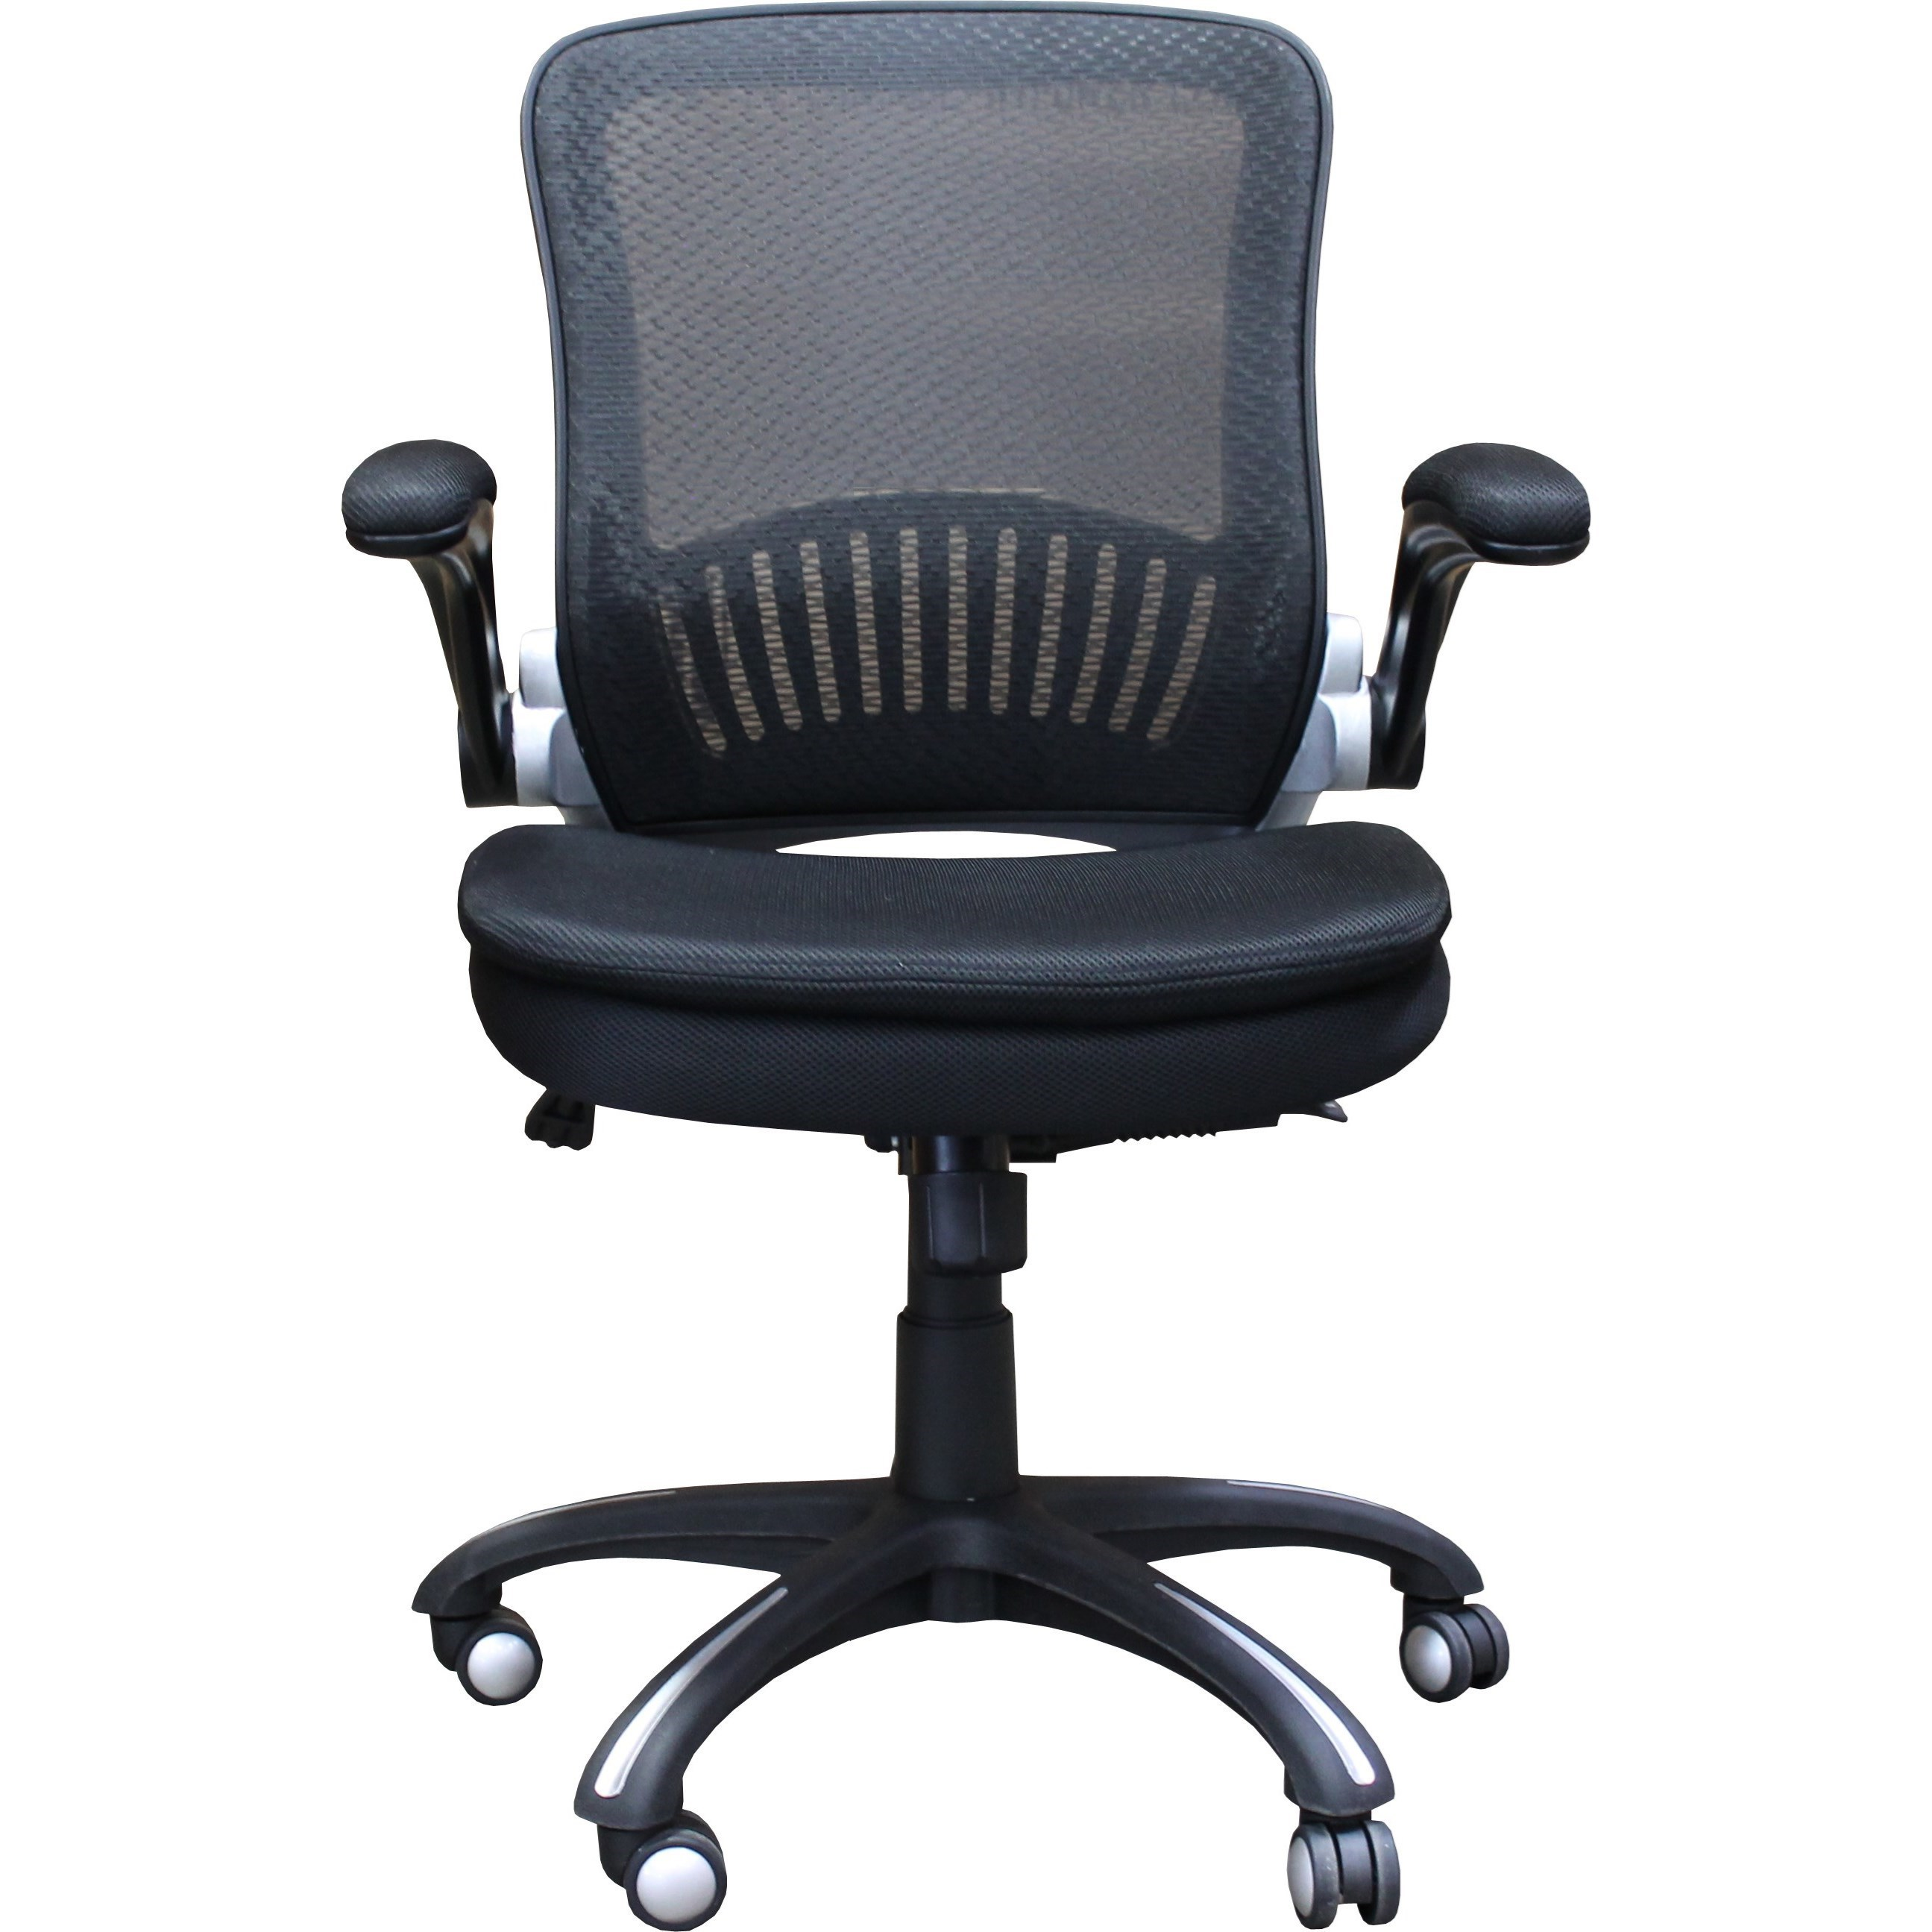 Parker Living Desk Chairs Mesh Desk Chair With Lift Arm